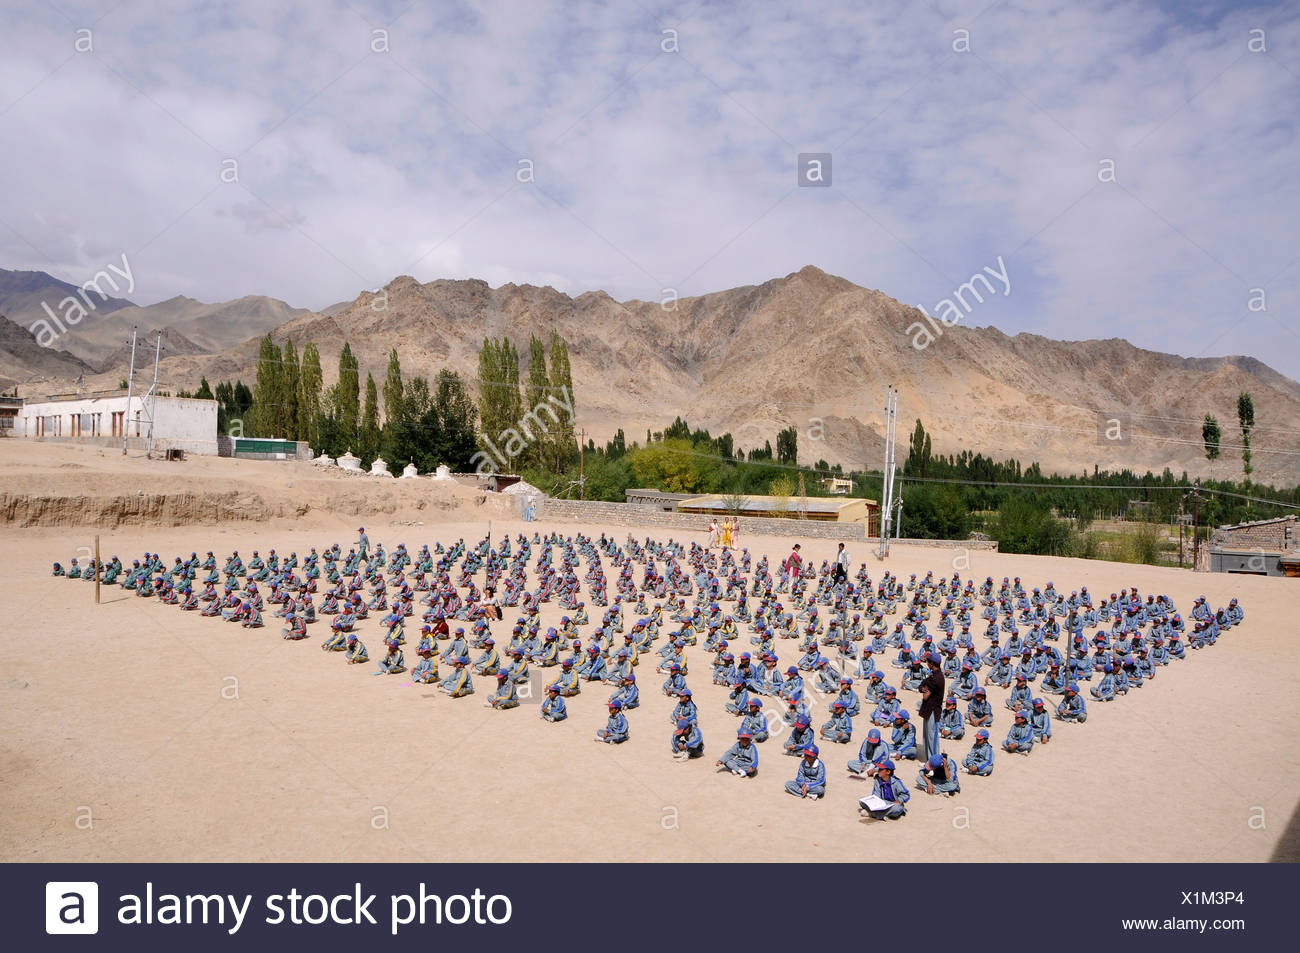 Morning report in the Indian school system at a school in Lamdon, Leh, Jammu and Kashmir, India, Himalayas, Asia - Stock Image